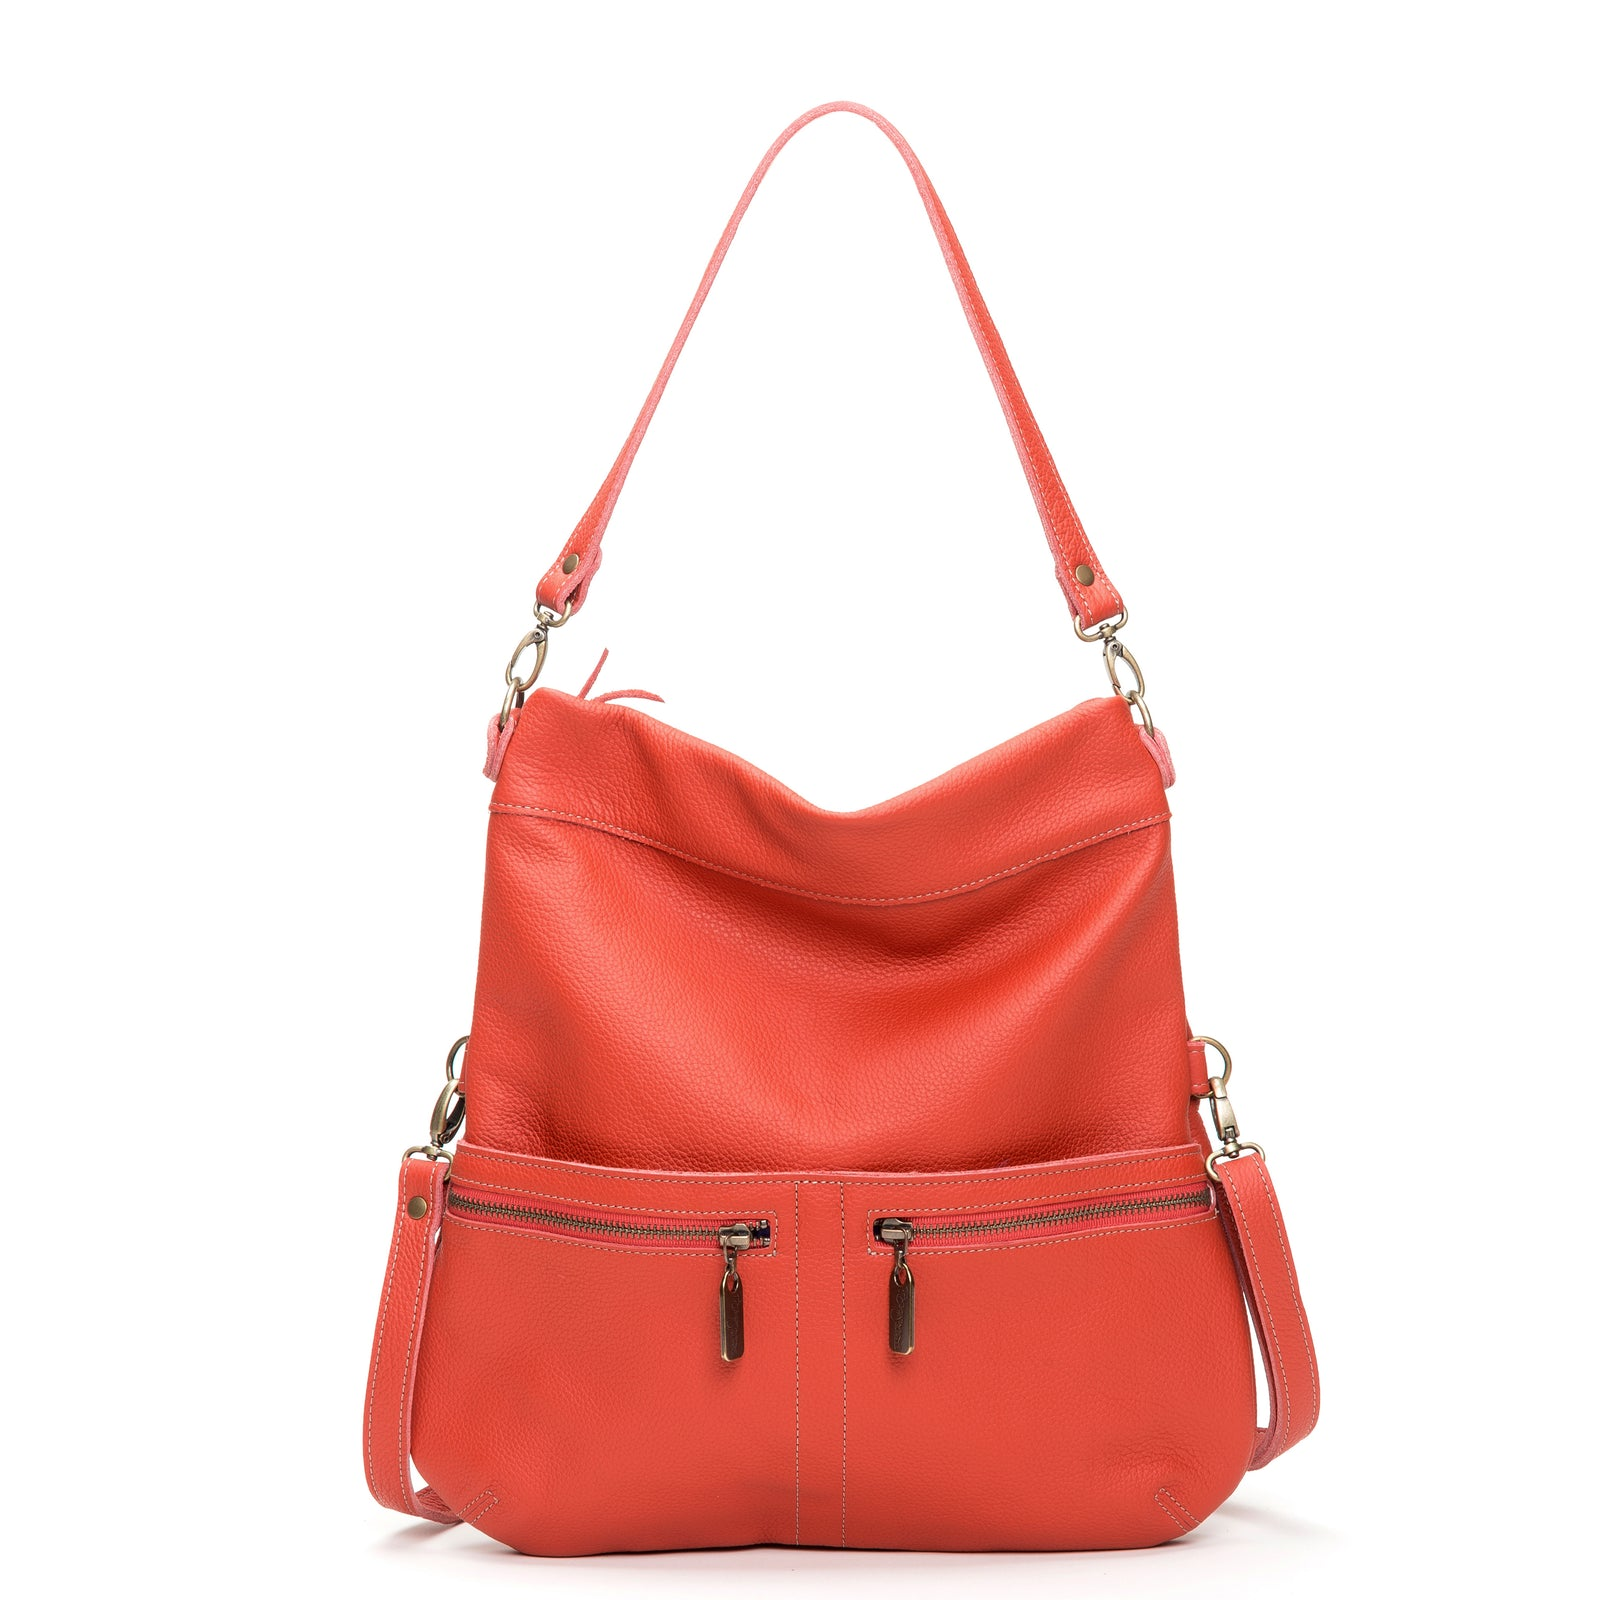 Mini-Lauren Crossbody - Lobster Tail - Brynn Capella, Medium Crossbody